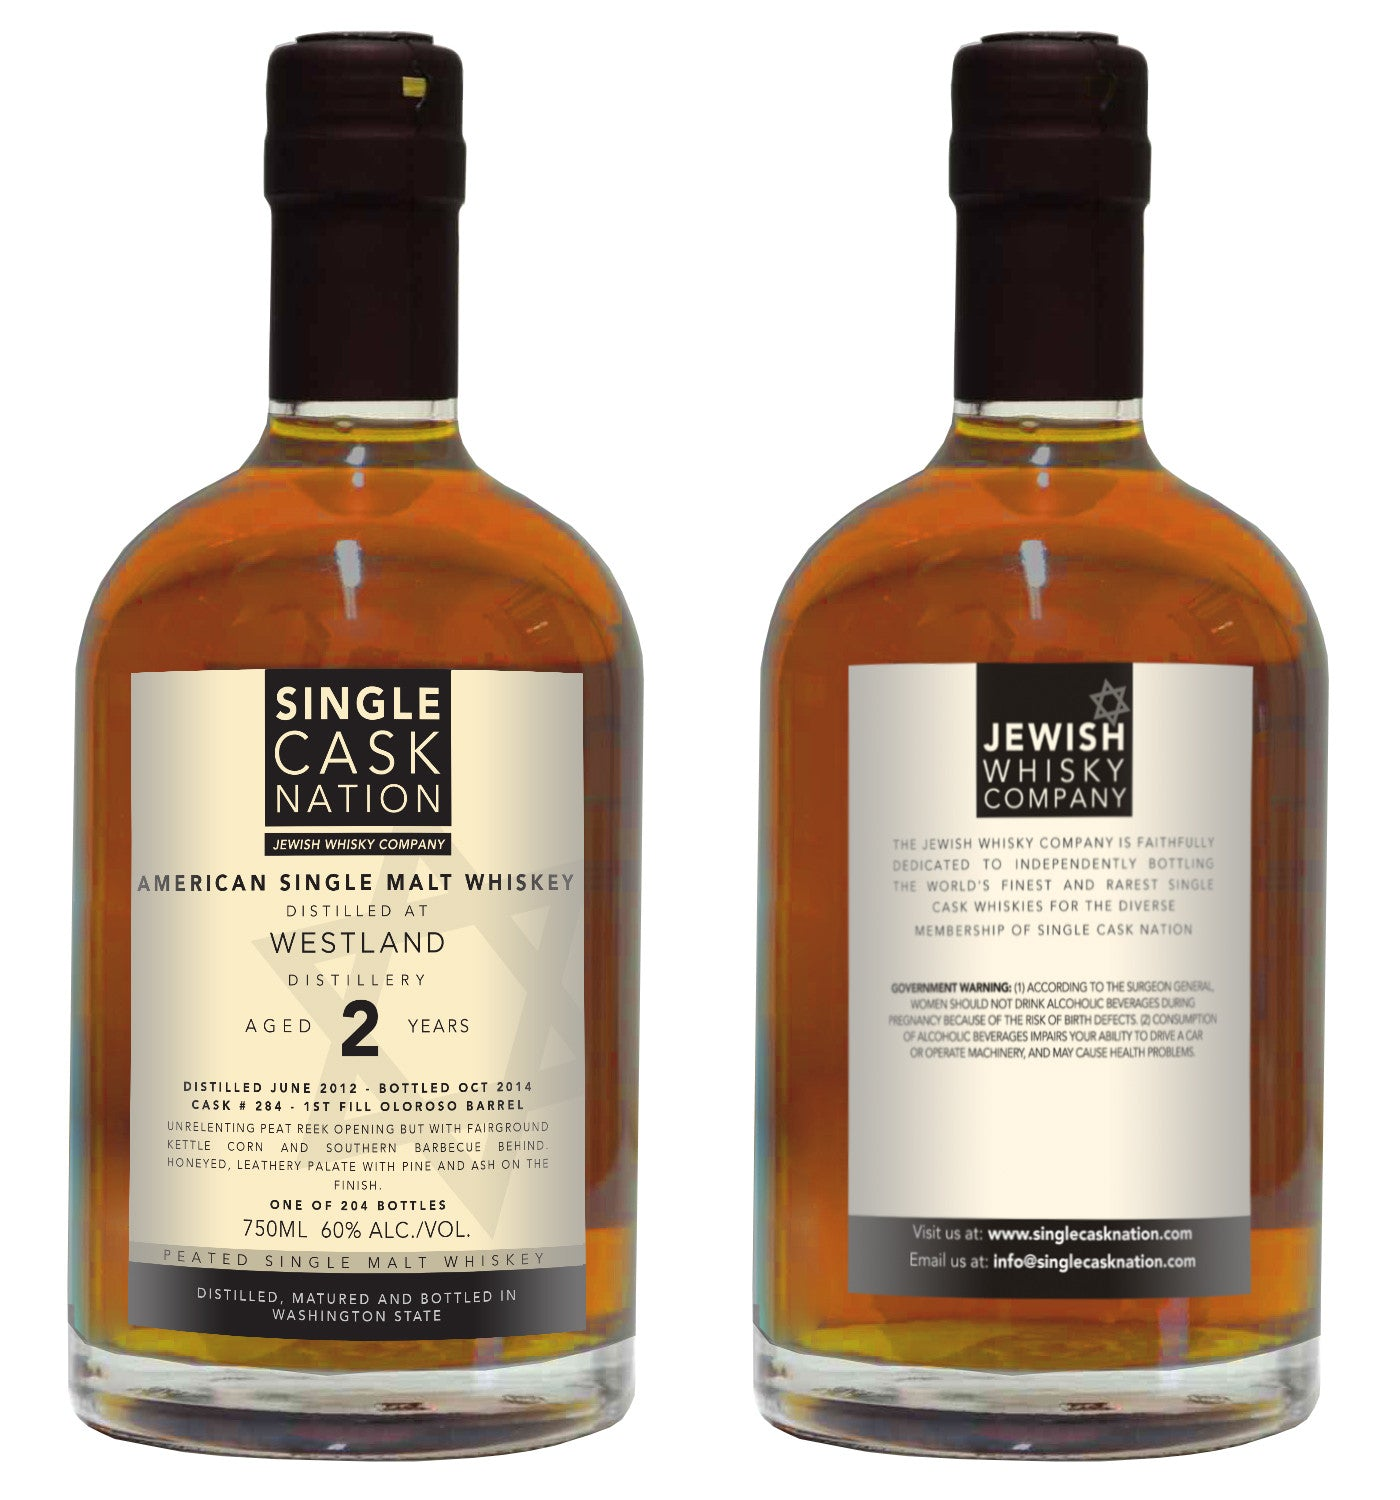 Westland 2, Oloroso Sherry Barrel - ARCHIVED - Single Cask Nation®